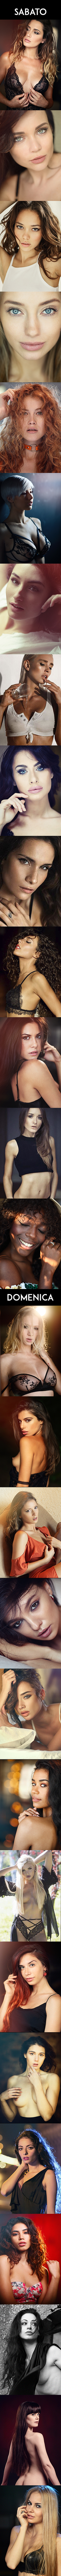 Workshop di fotografia a Roma